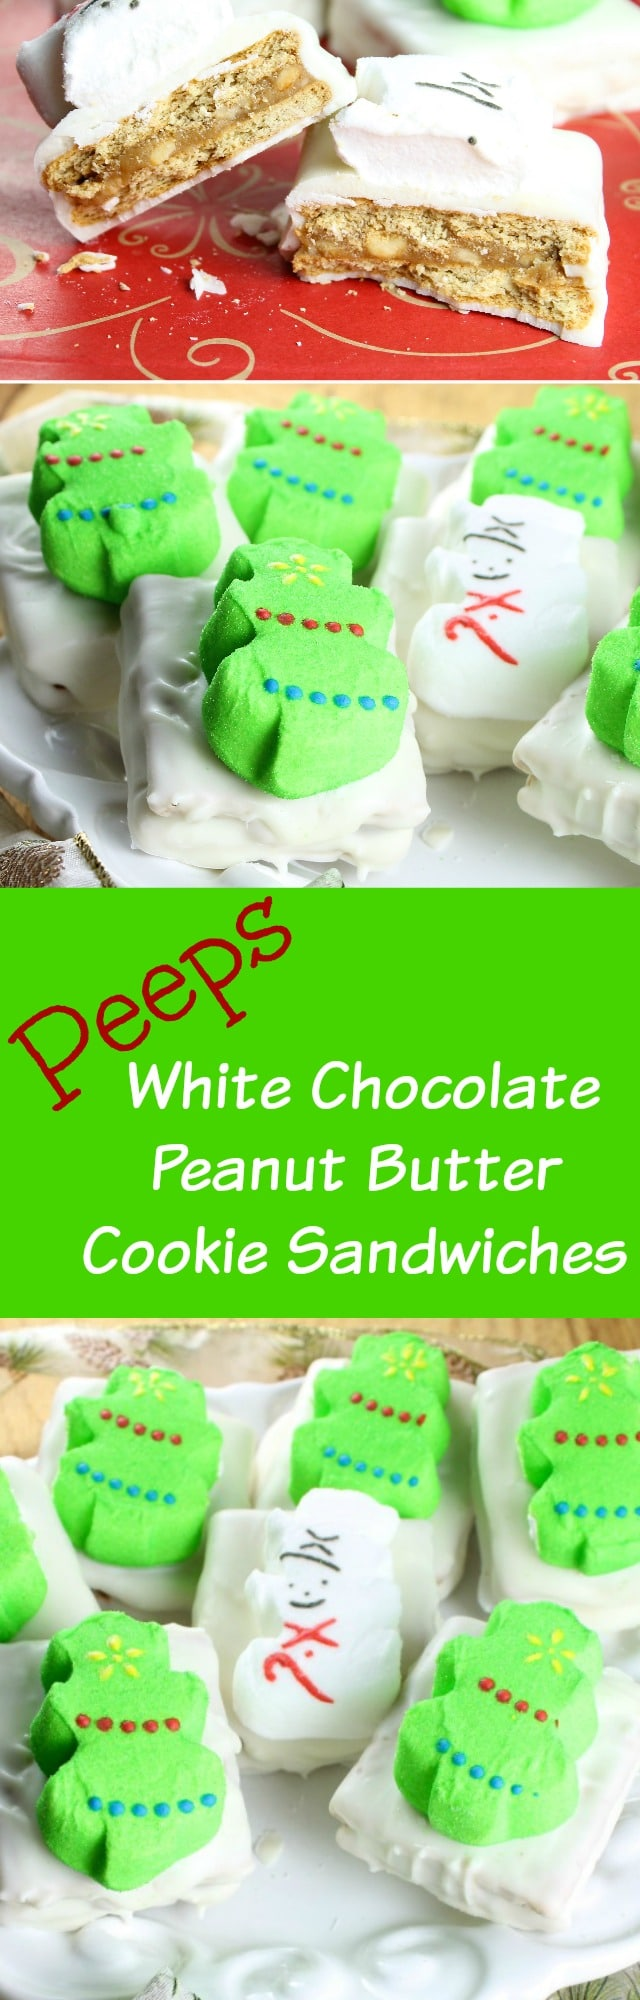 Peeps White Chocolate Peanut Butter Cookie Sandwiches Recipe found at Miss in the Kitchen